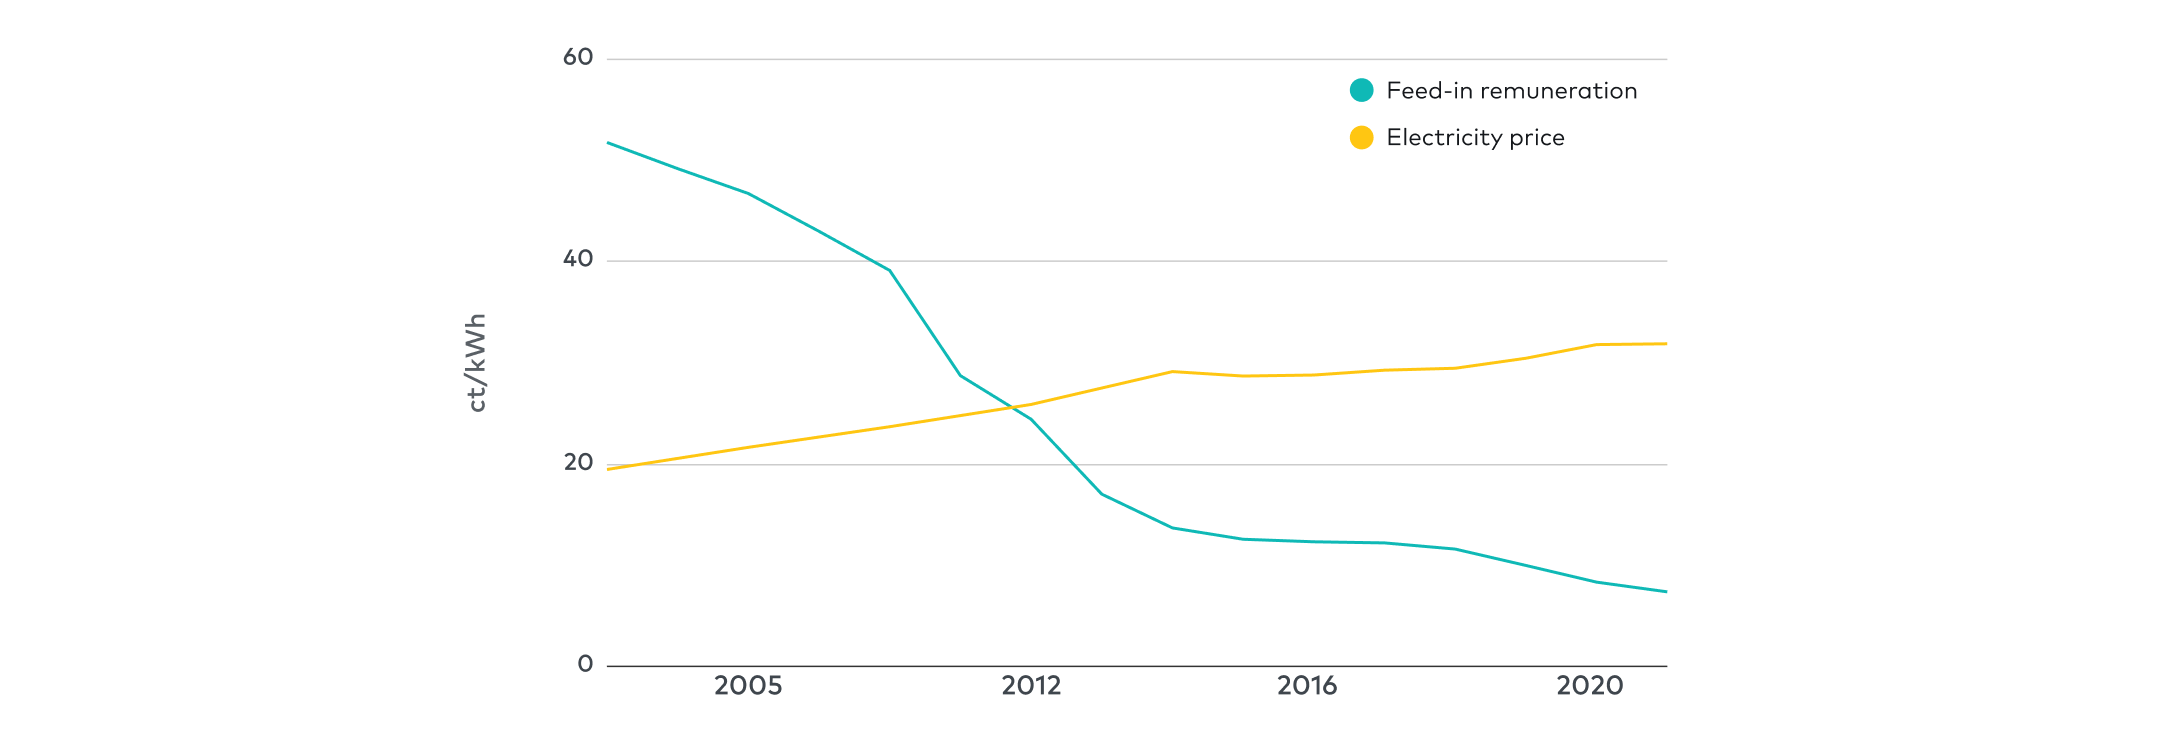 Reduced incentive to feed energy back into the German grid